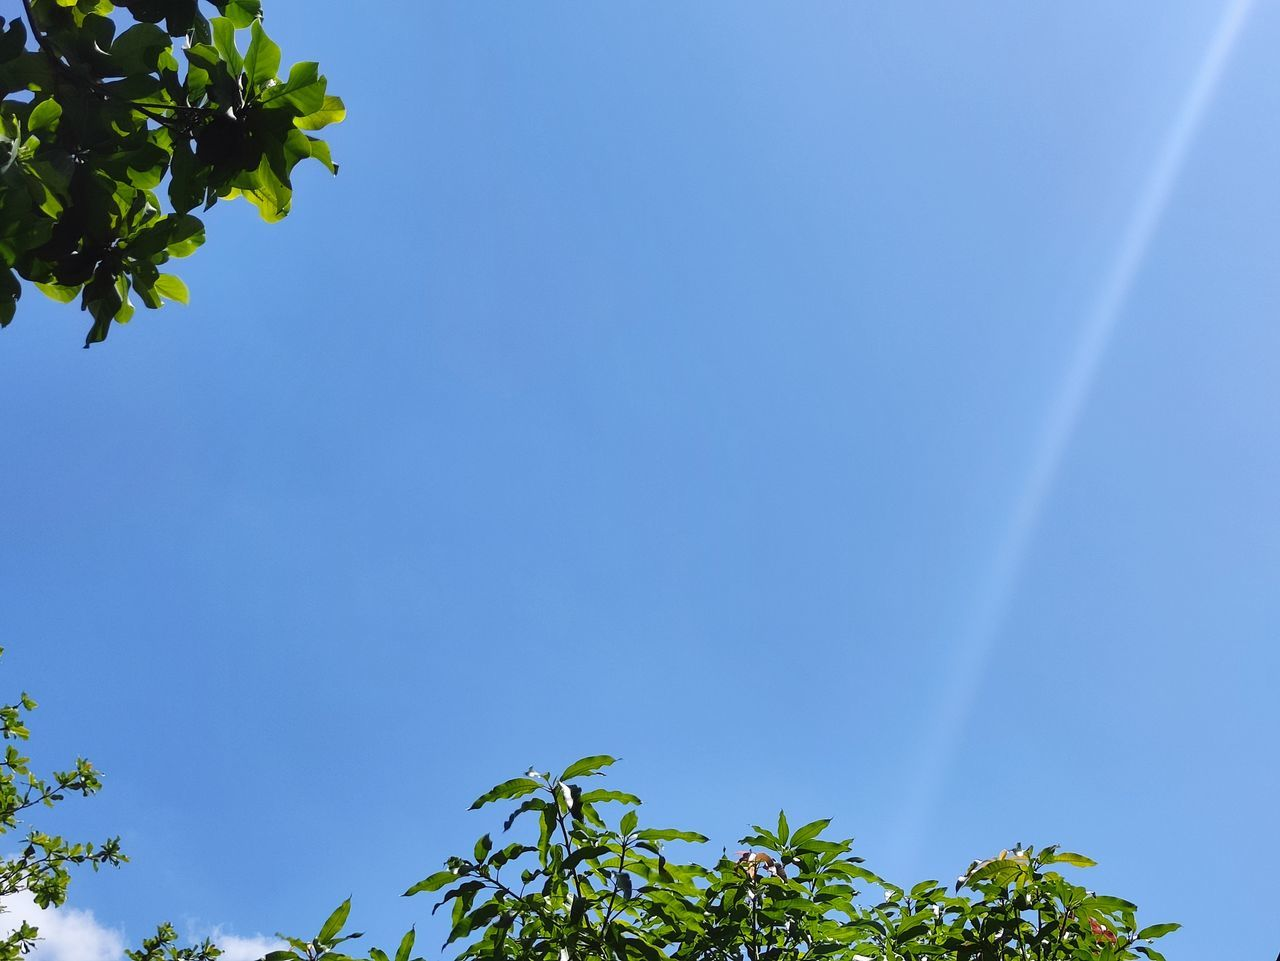 LOW ANGLE VIEW OF BLUE FLOWERING PLANT AGAINST CLEAR SKY